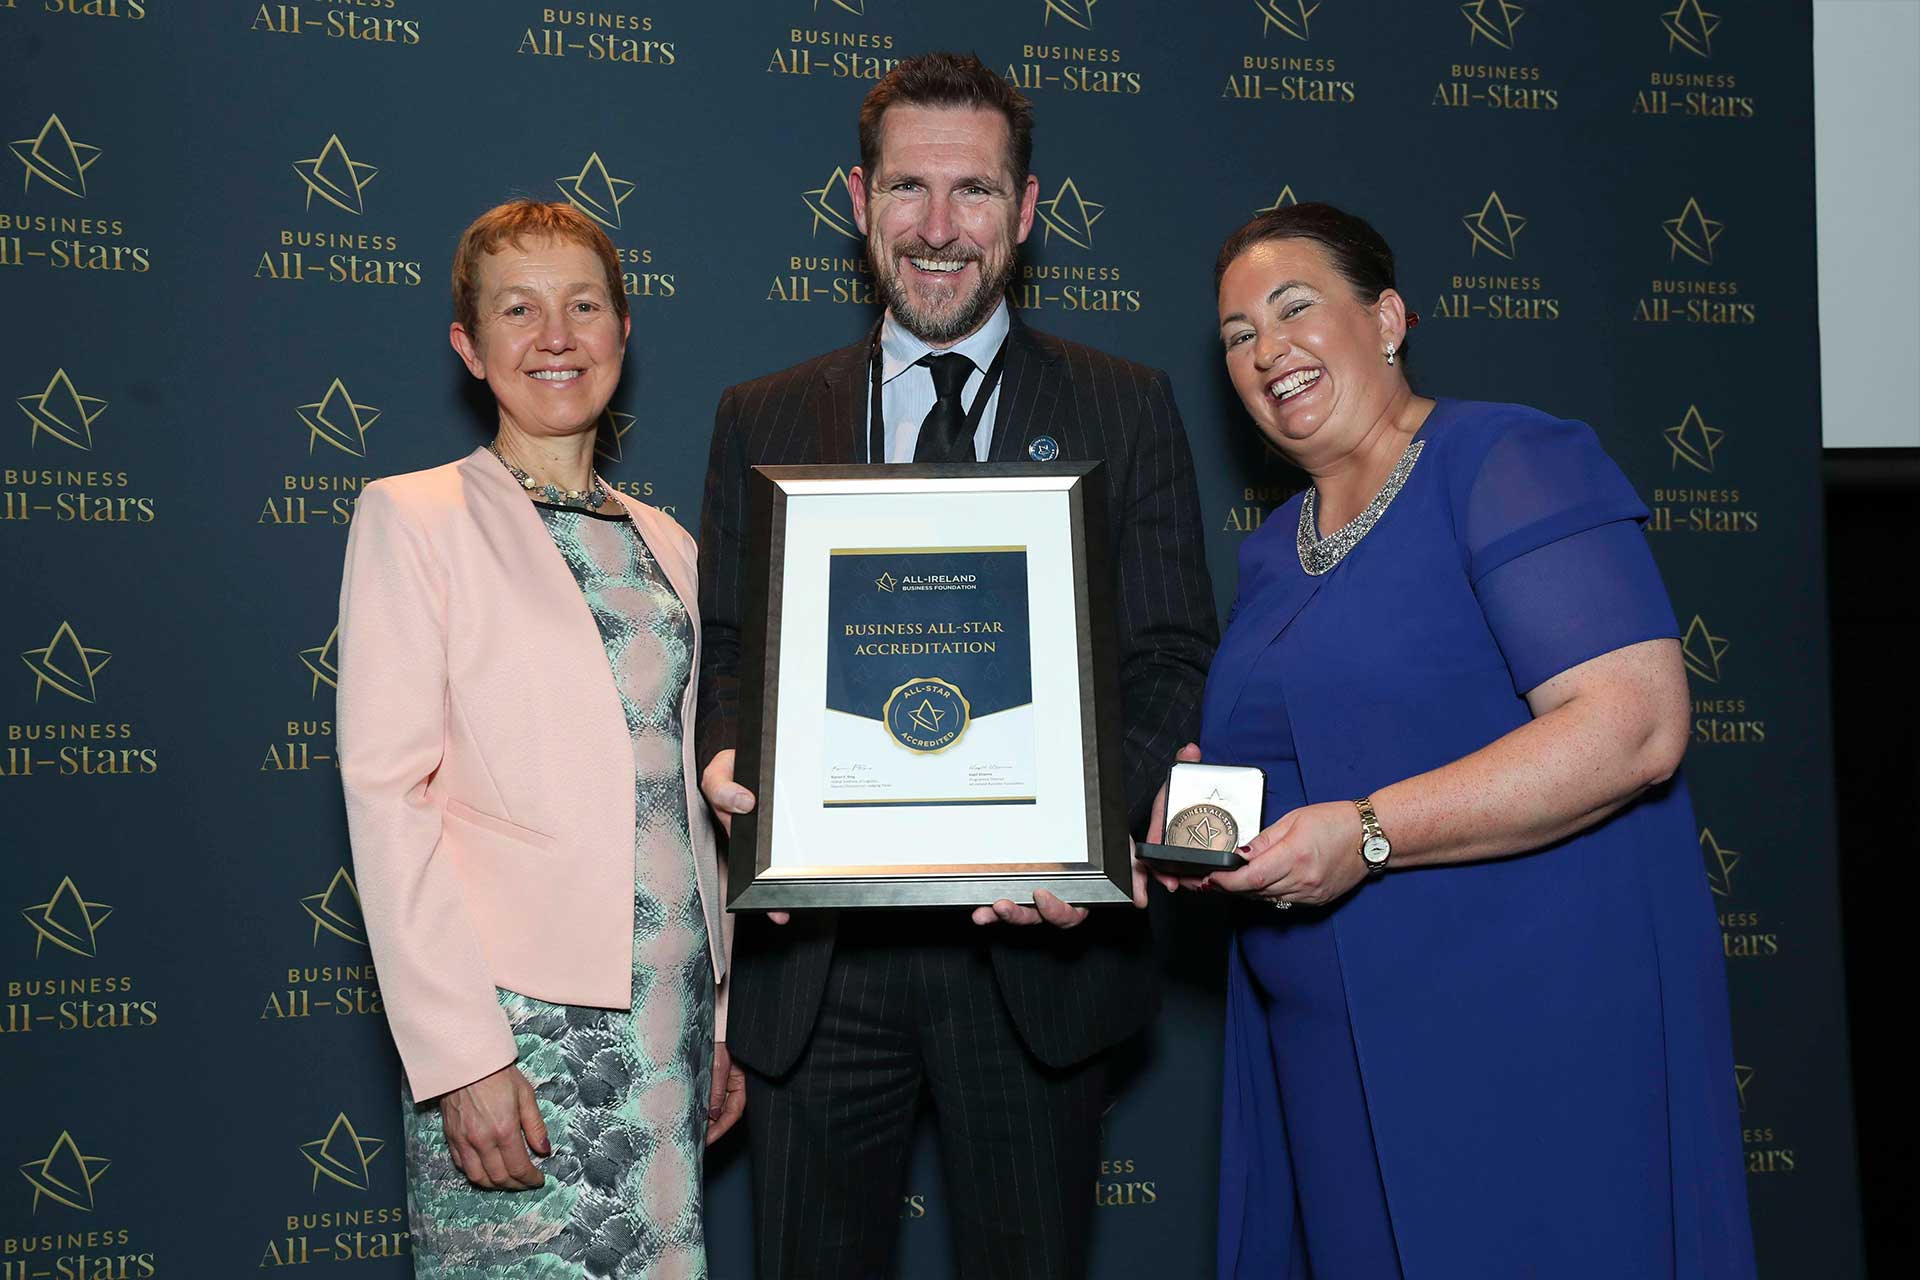 John Waters - Phonovation receiving Business All-Star Accreditation at Croke Park from Dr Briga Hynes, Kemmy Business School, University of Limerick and Elaine Carroll CEO, All-Ireland Business Foundation.